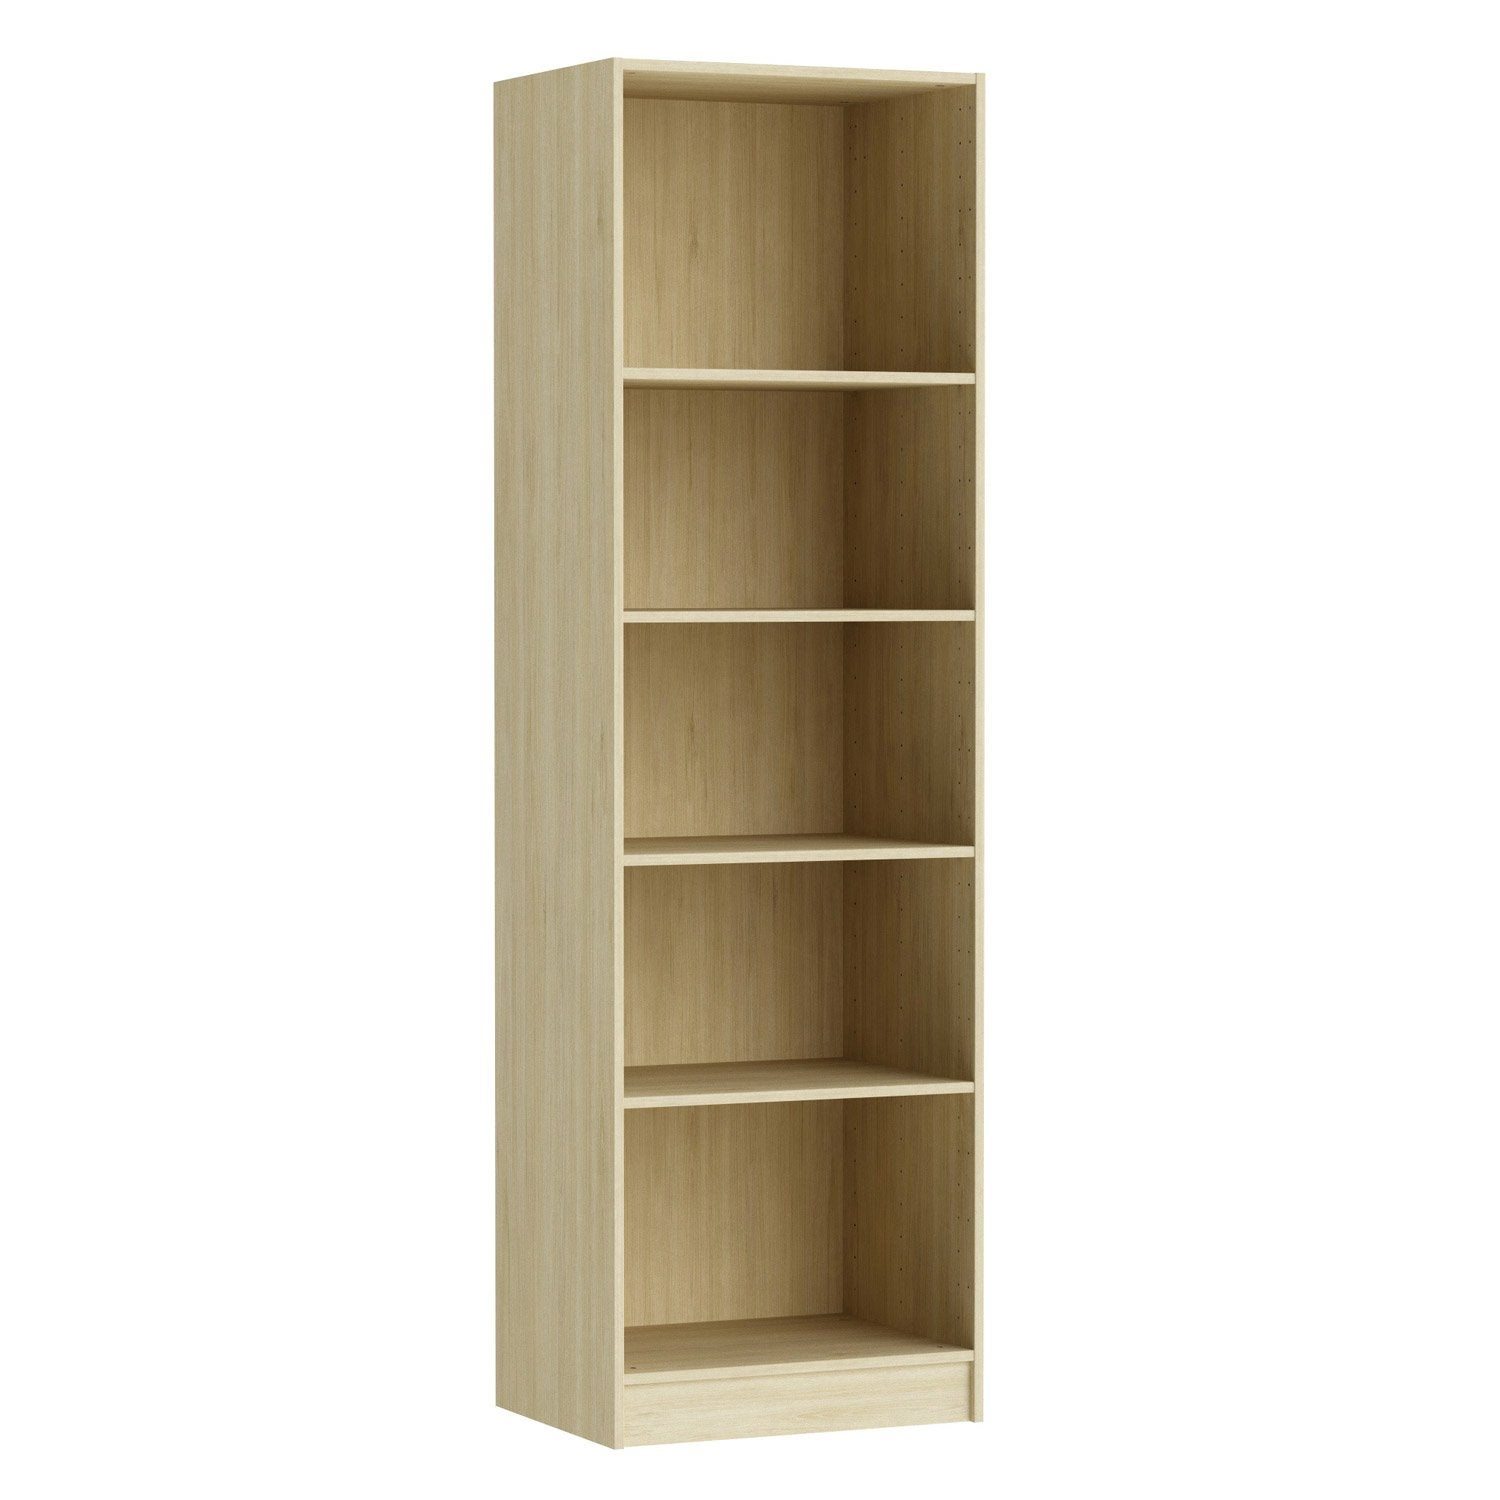 Caisson spaceo home 200 x 60 x 45 cm effet ch ne naturel leroy merlin - Penderie leroy merlin ...